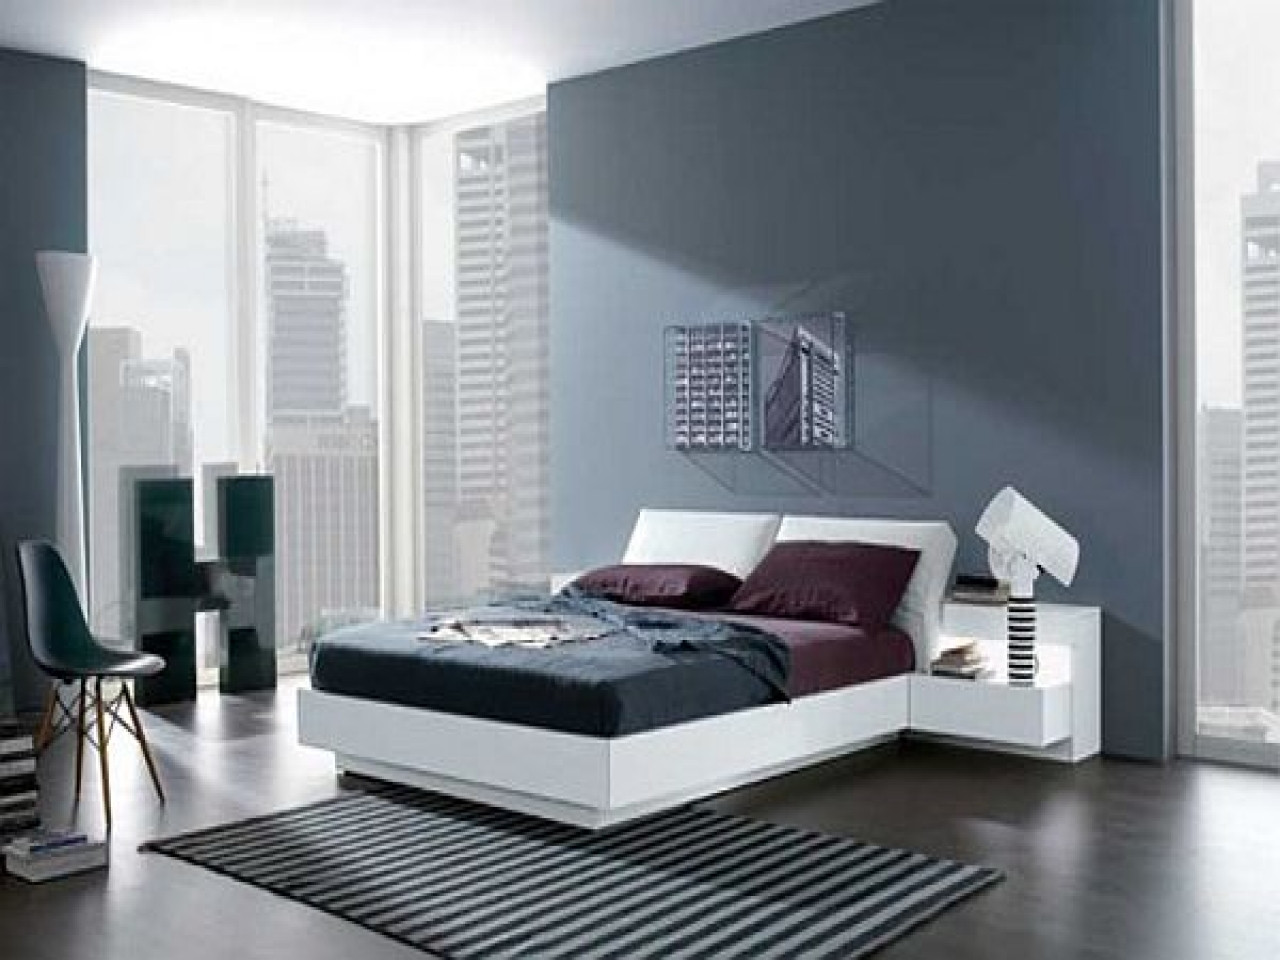 Best ideas about Modern Paint Colors . Save or Pin Colour schemes for bedrooms modern modern bedroom paint Now.